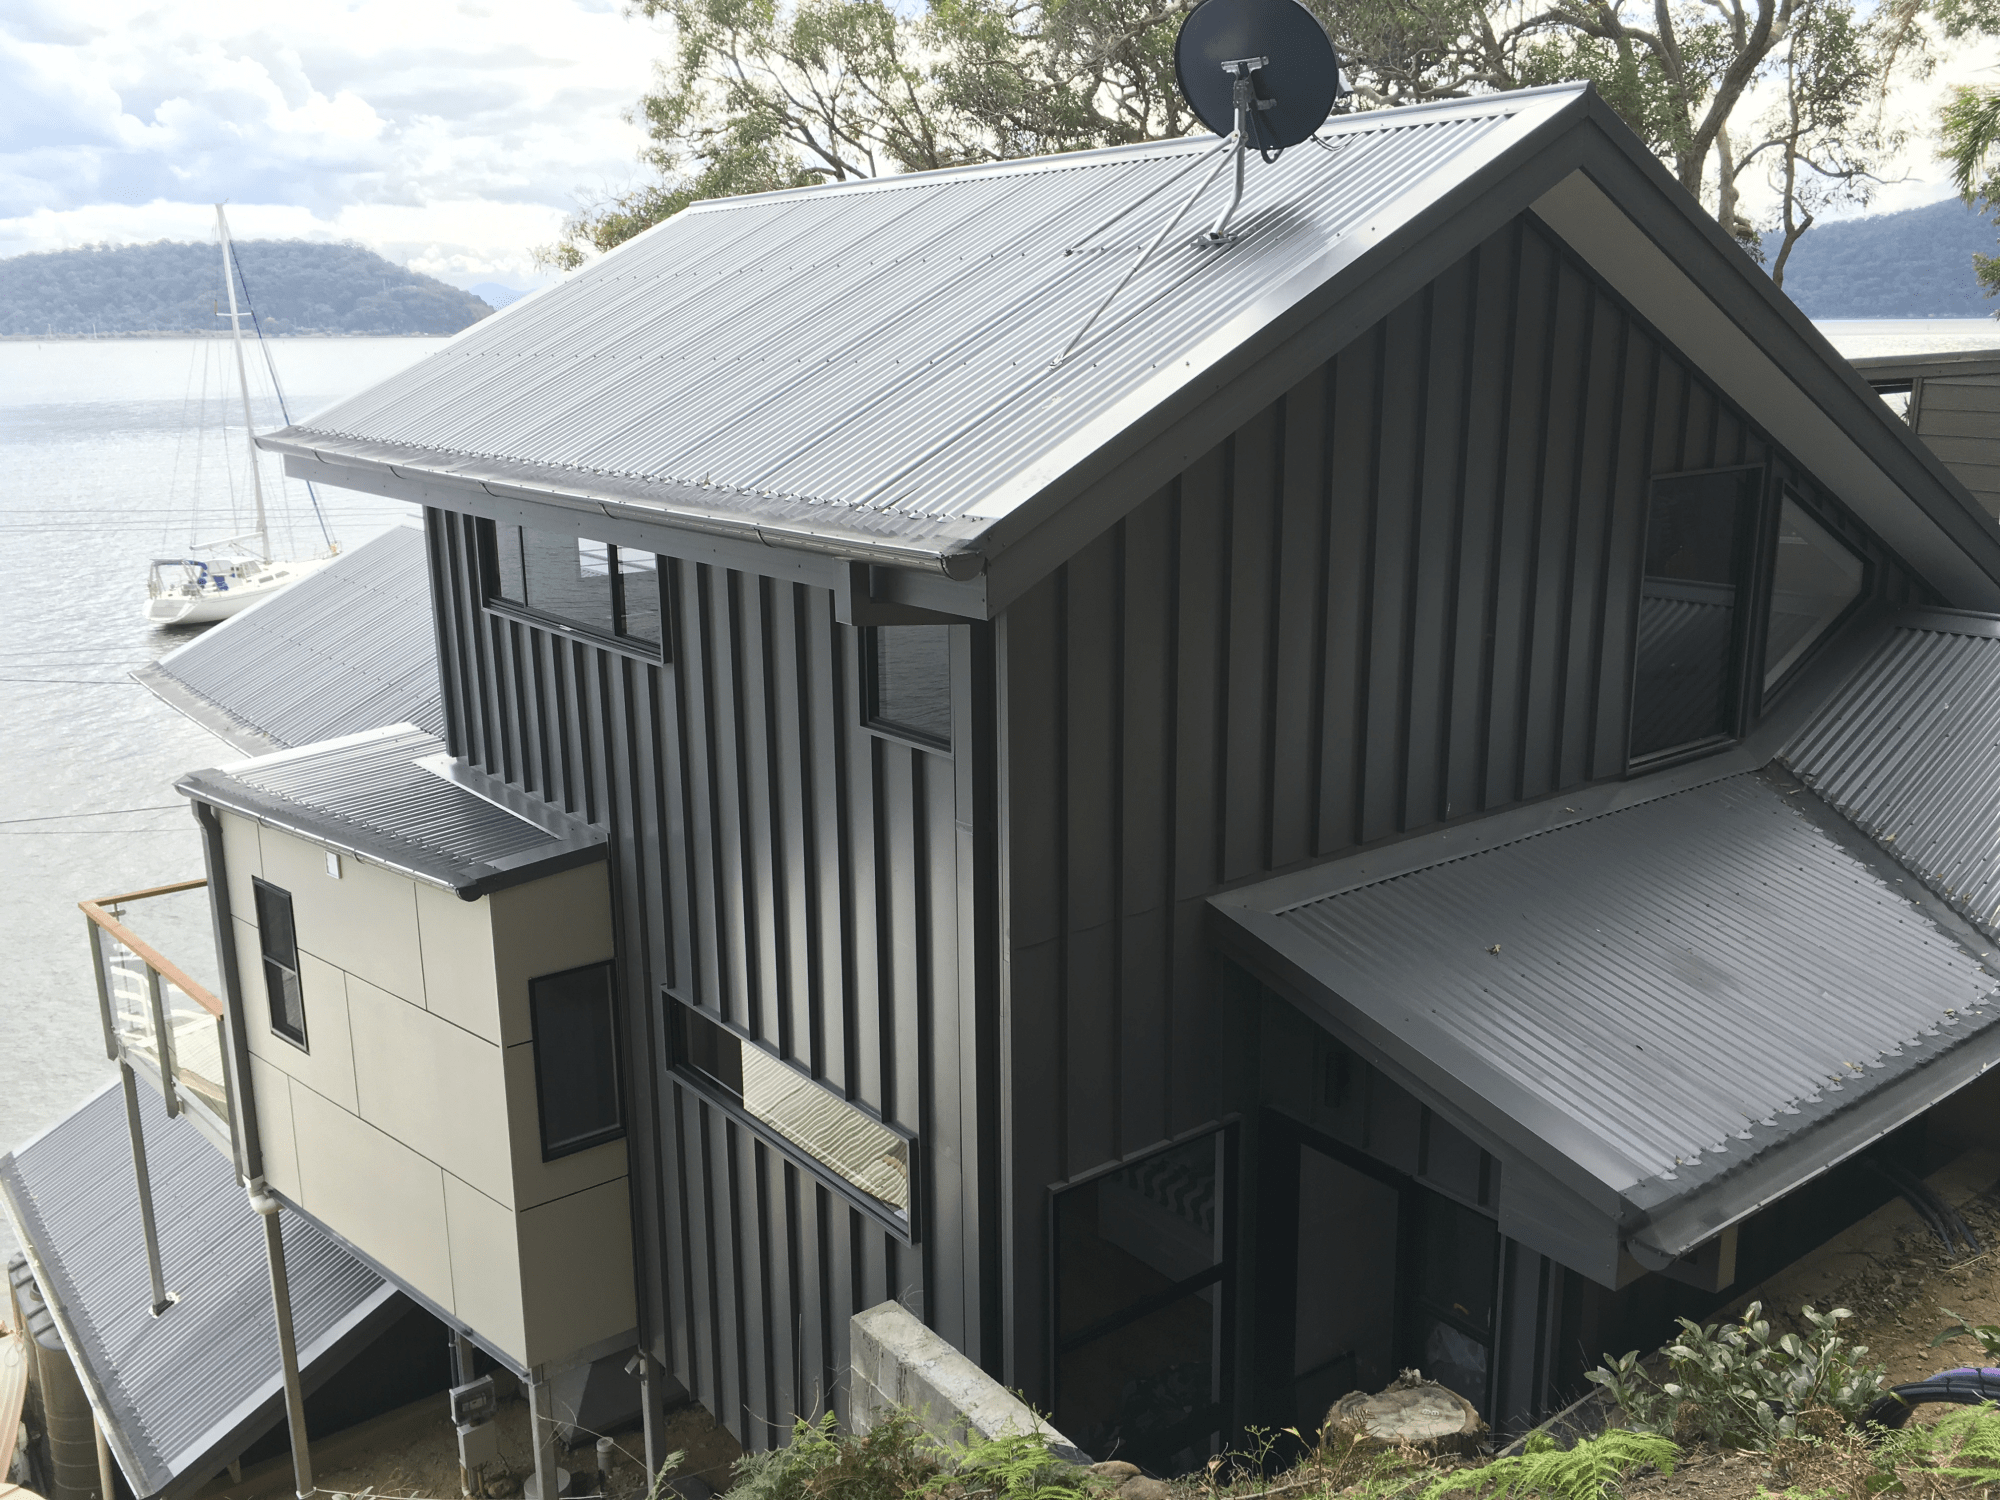 Nail Strip Roofing & Cladding - Hawkesburry